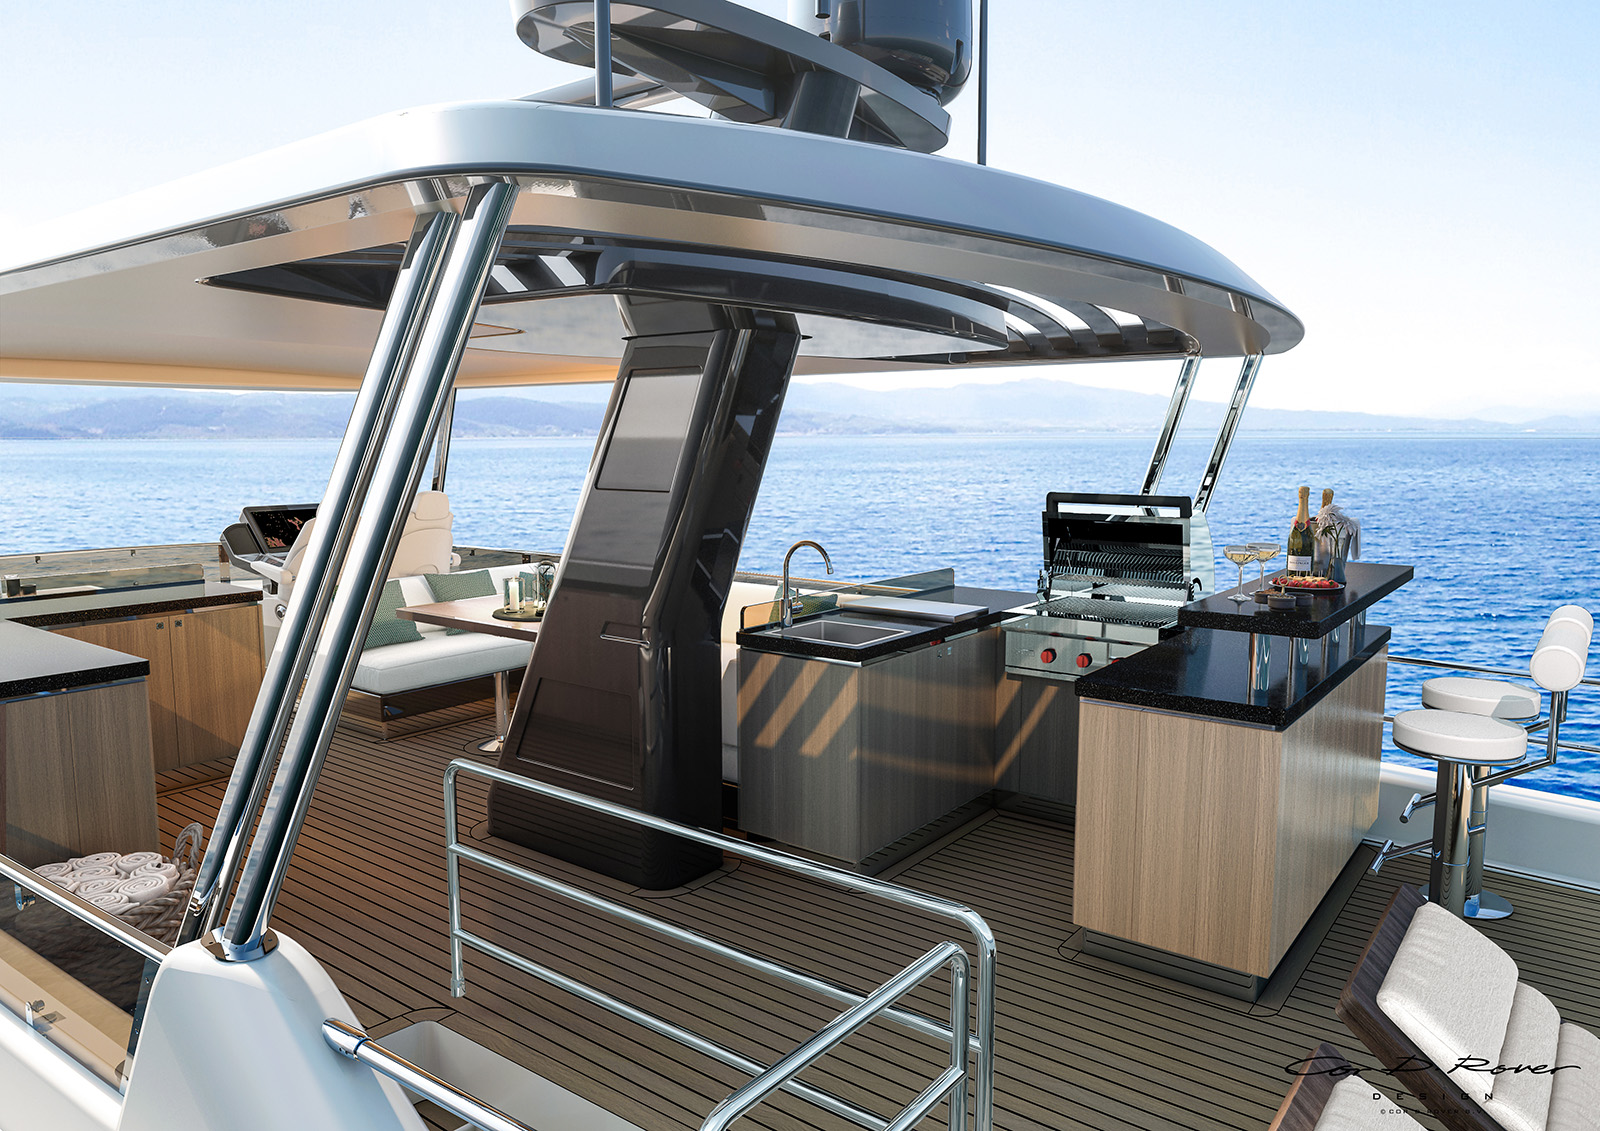 The view from the Sirena 68